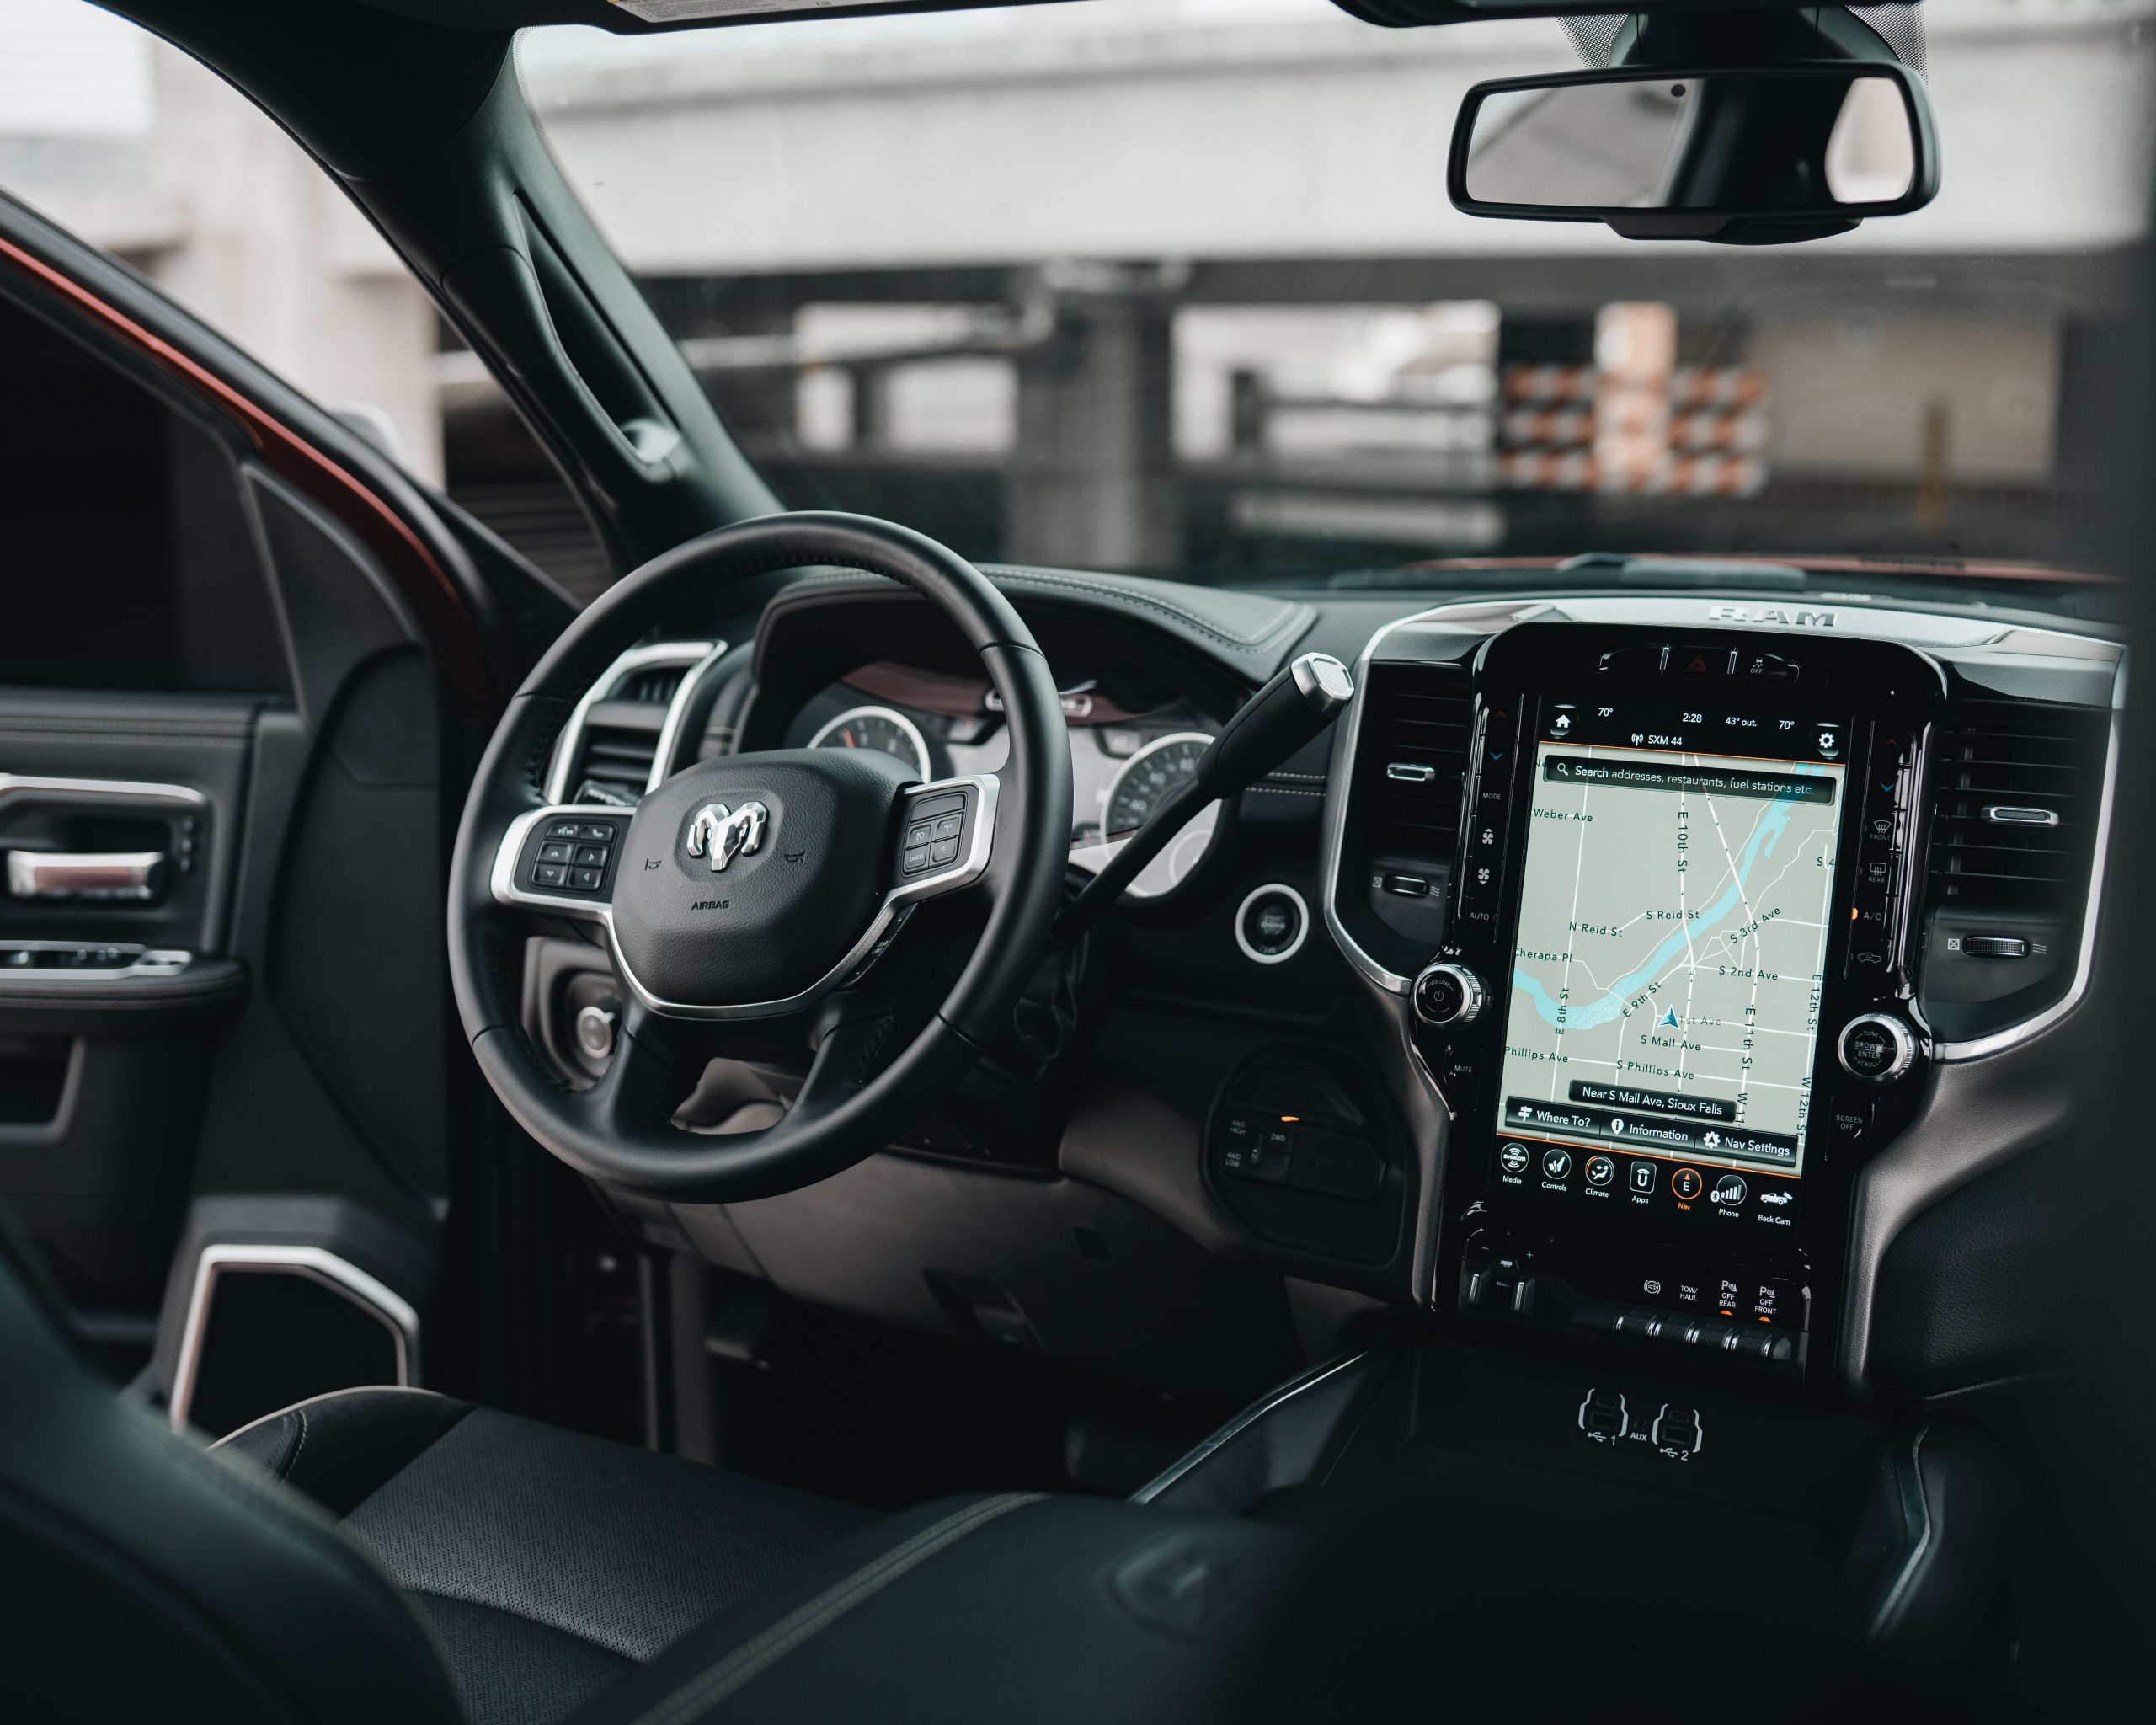 Connected smart car